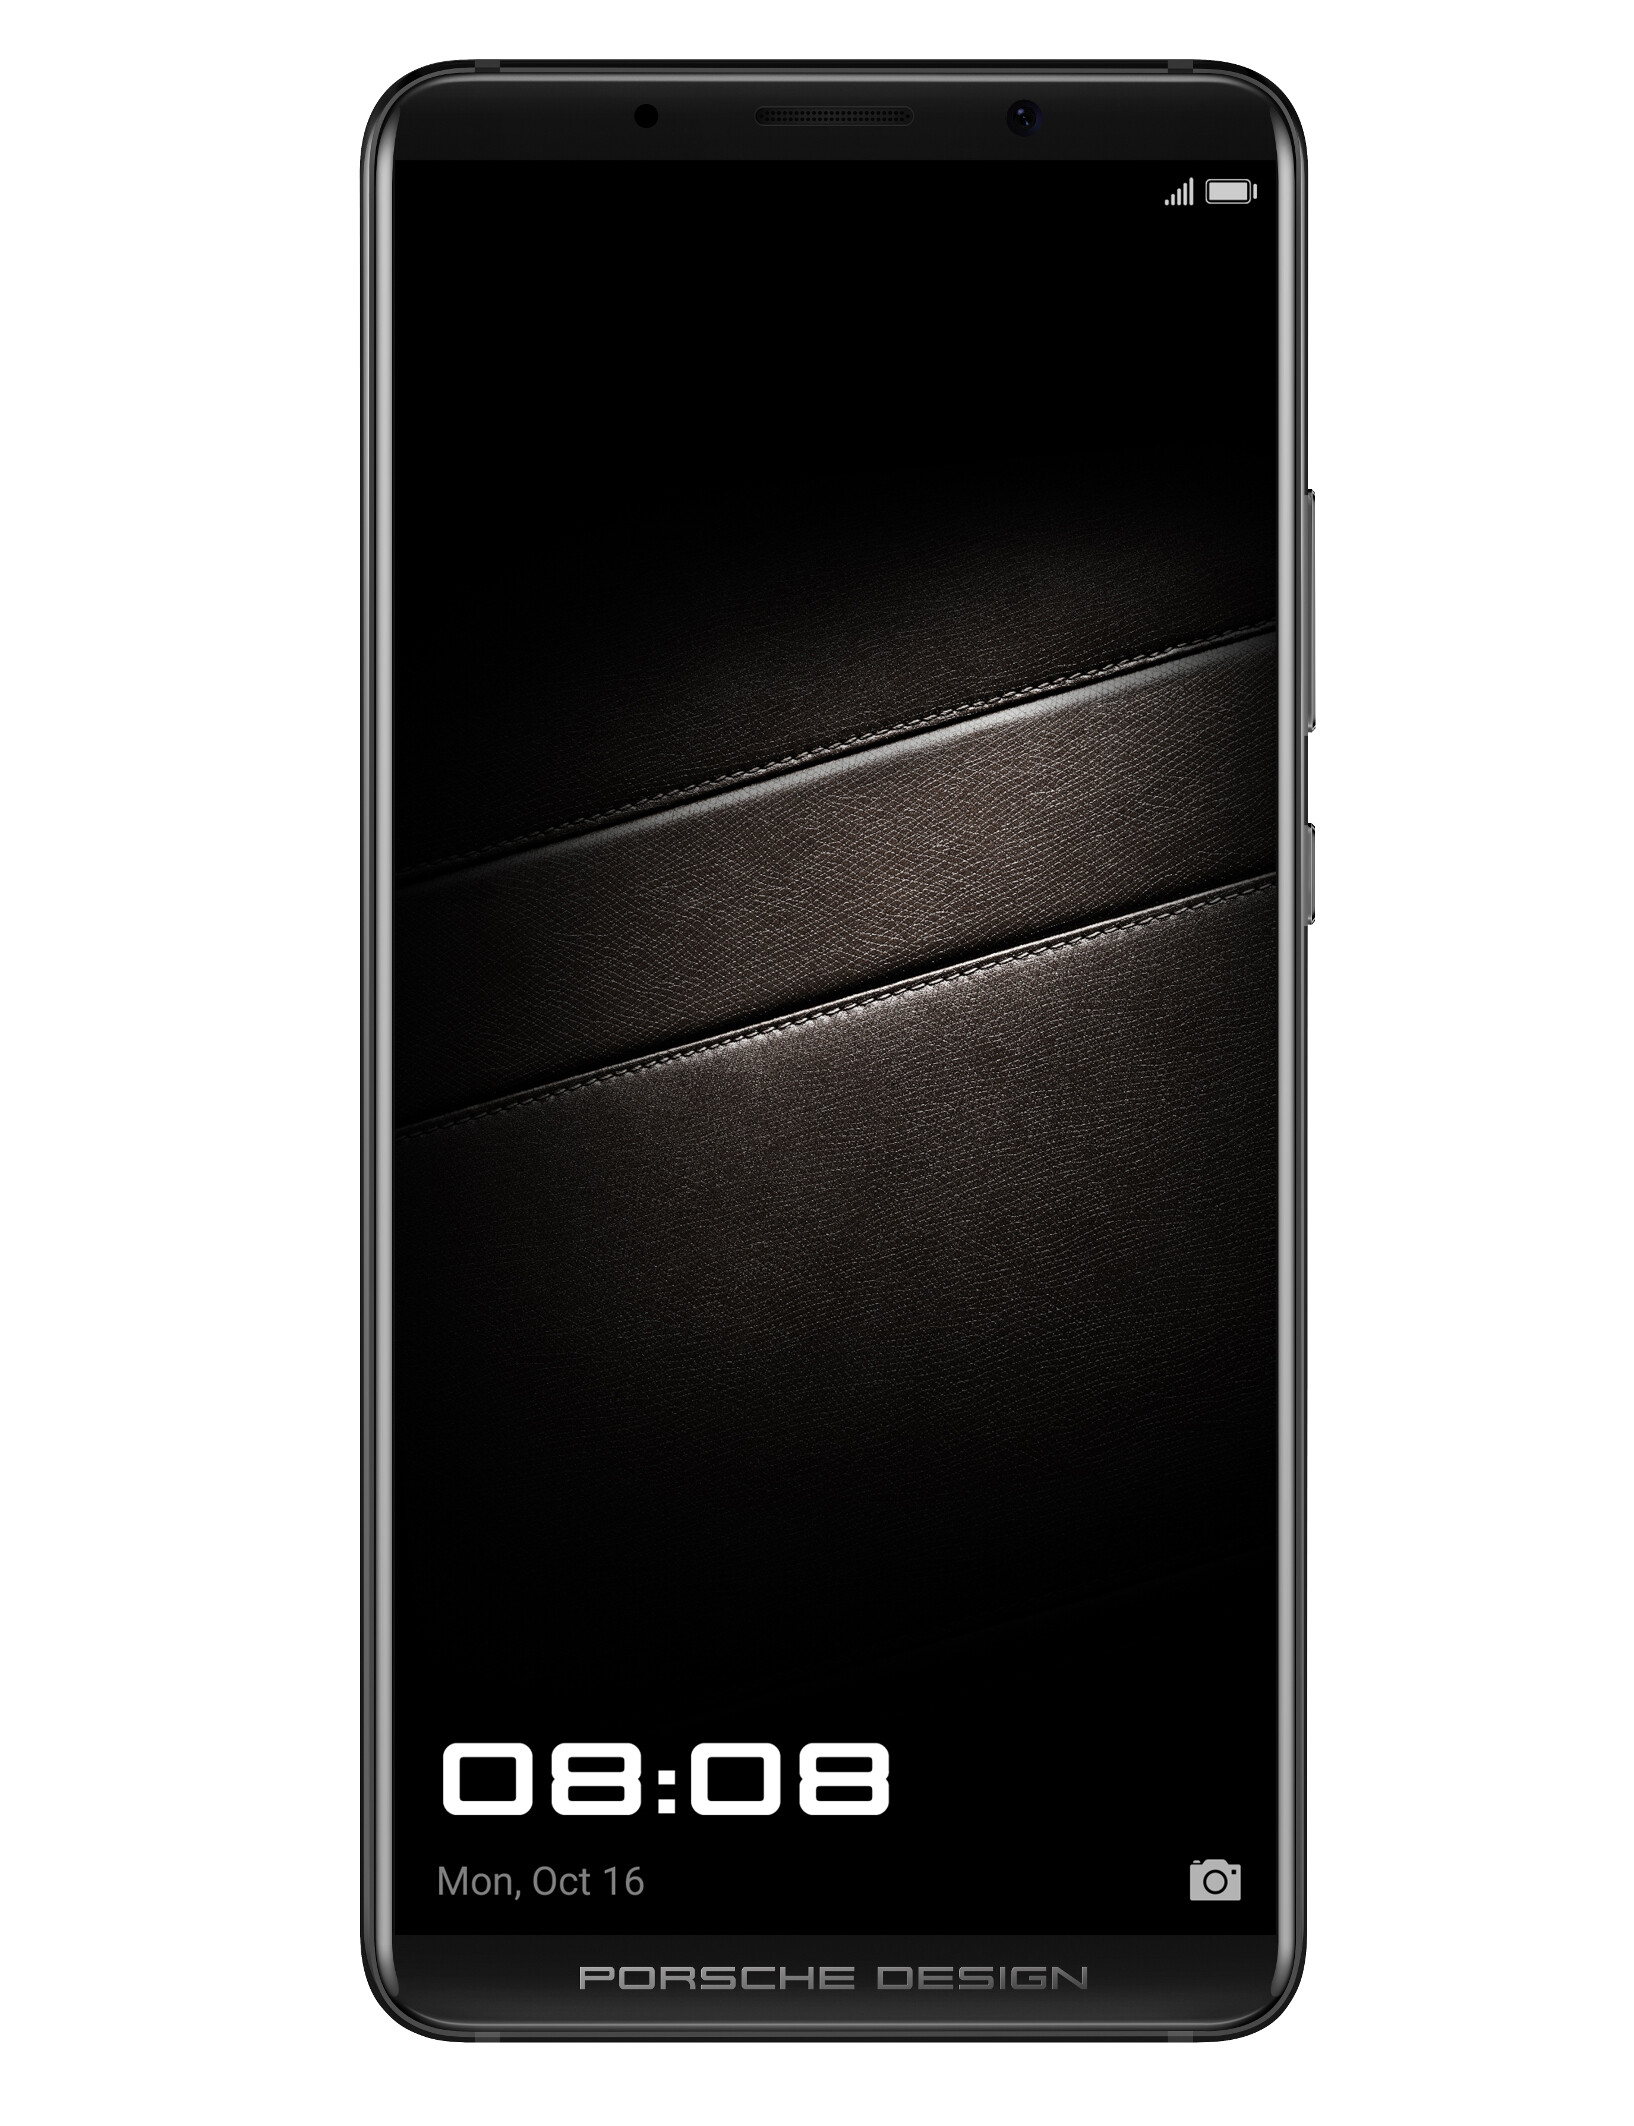 huawei mate 10 porsche design full specs. Black Bedroom Furniture Sets. Home Design Ideas